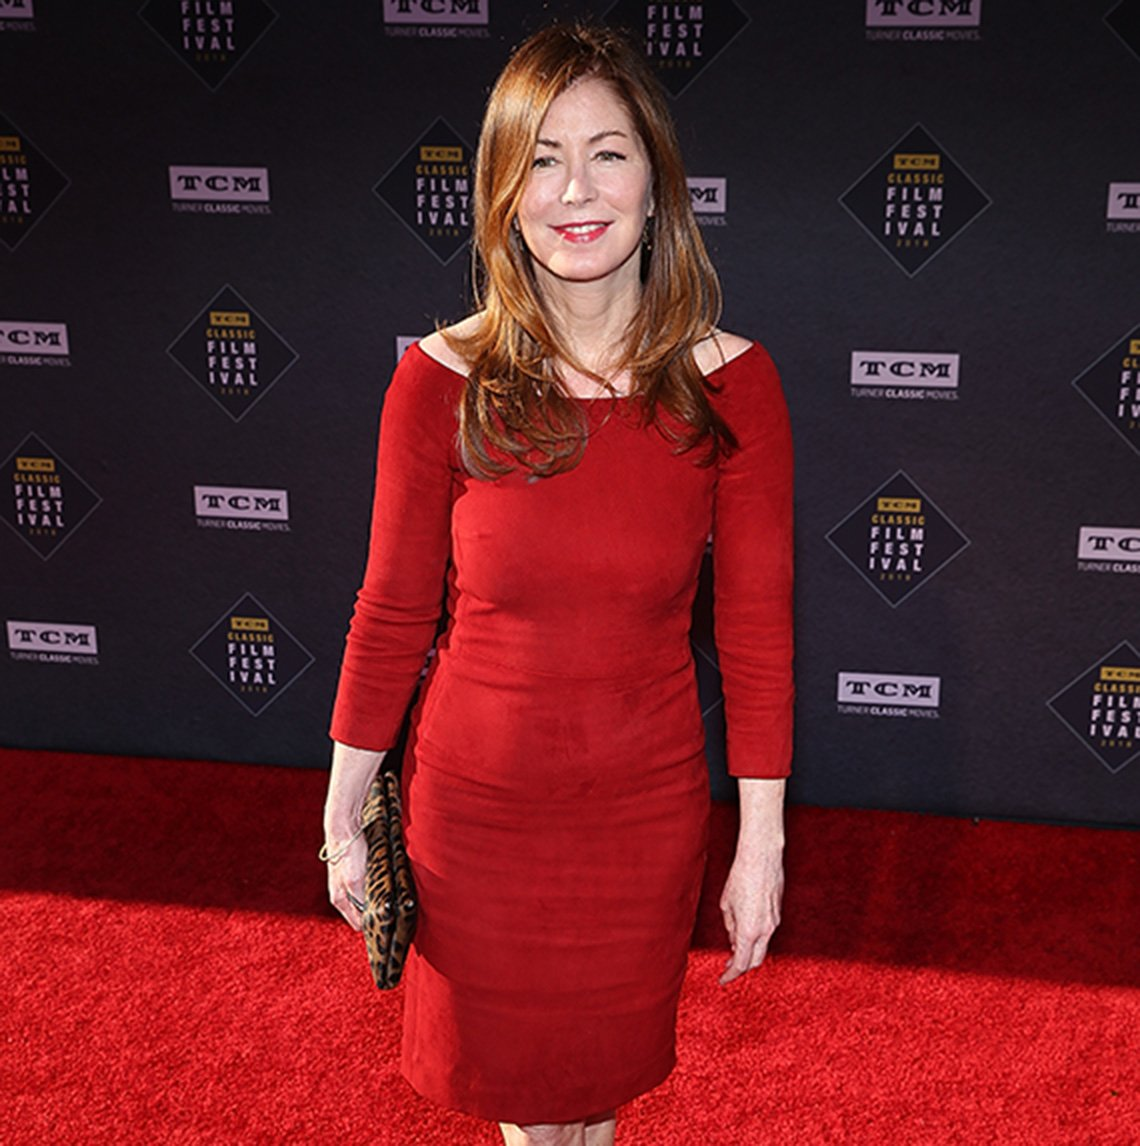 Dana Delany in a red nearly-off-shoulder knee-length sheath with 3/4 sleeves.